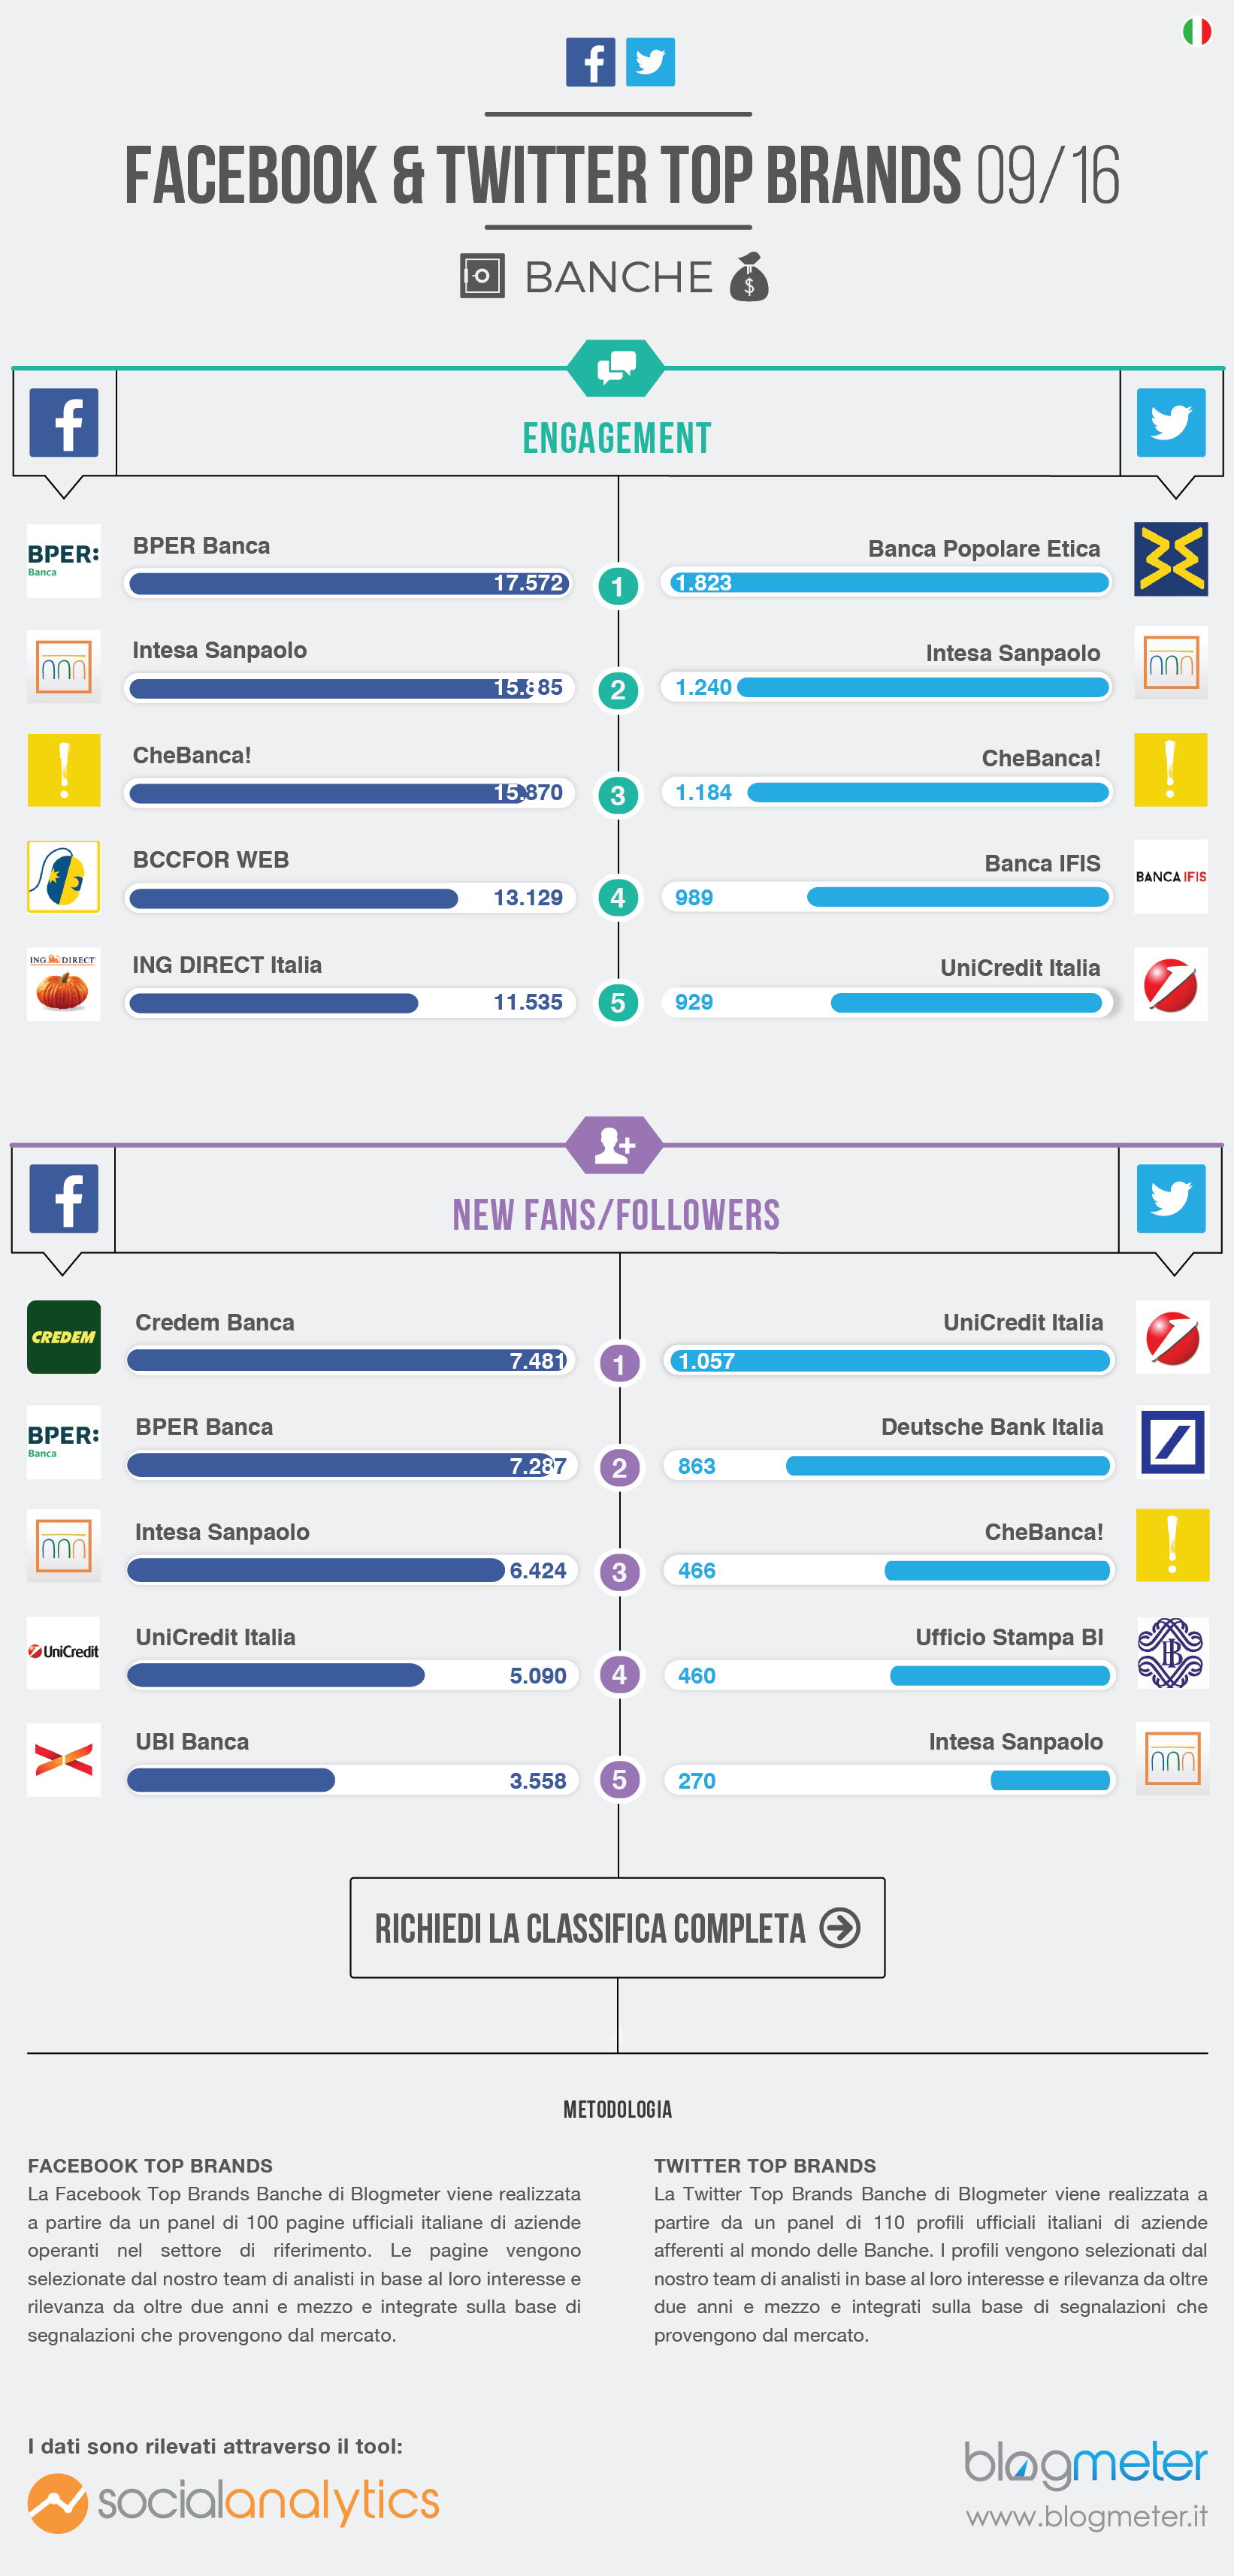 Top Brands Banche sui Social Network - Infografica Blogmeter